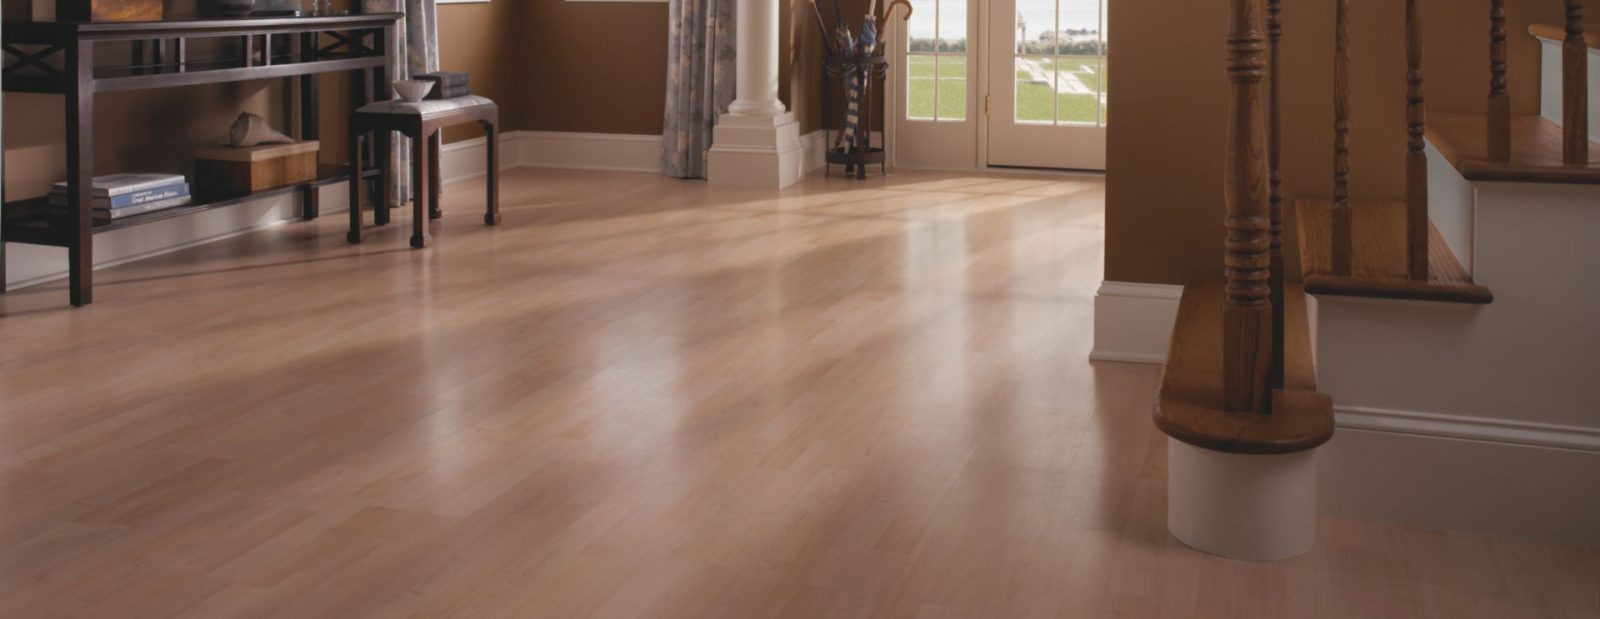 Laminate FlooringLaminate Flooring | A & S Carpet Collection